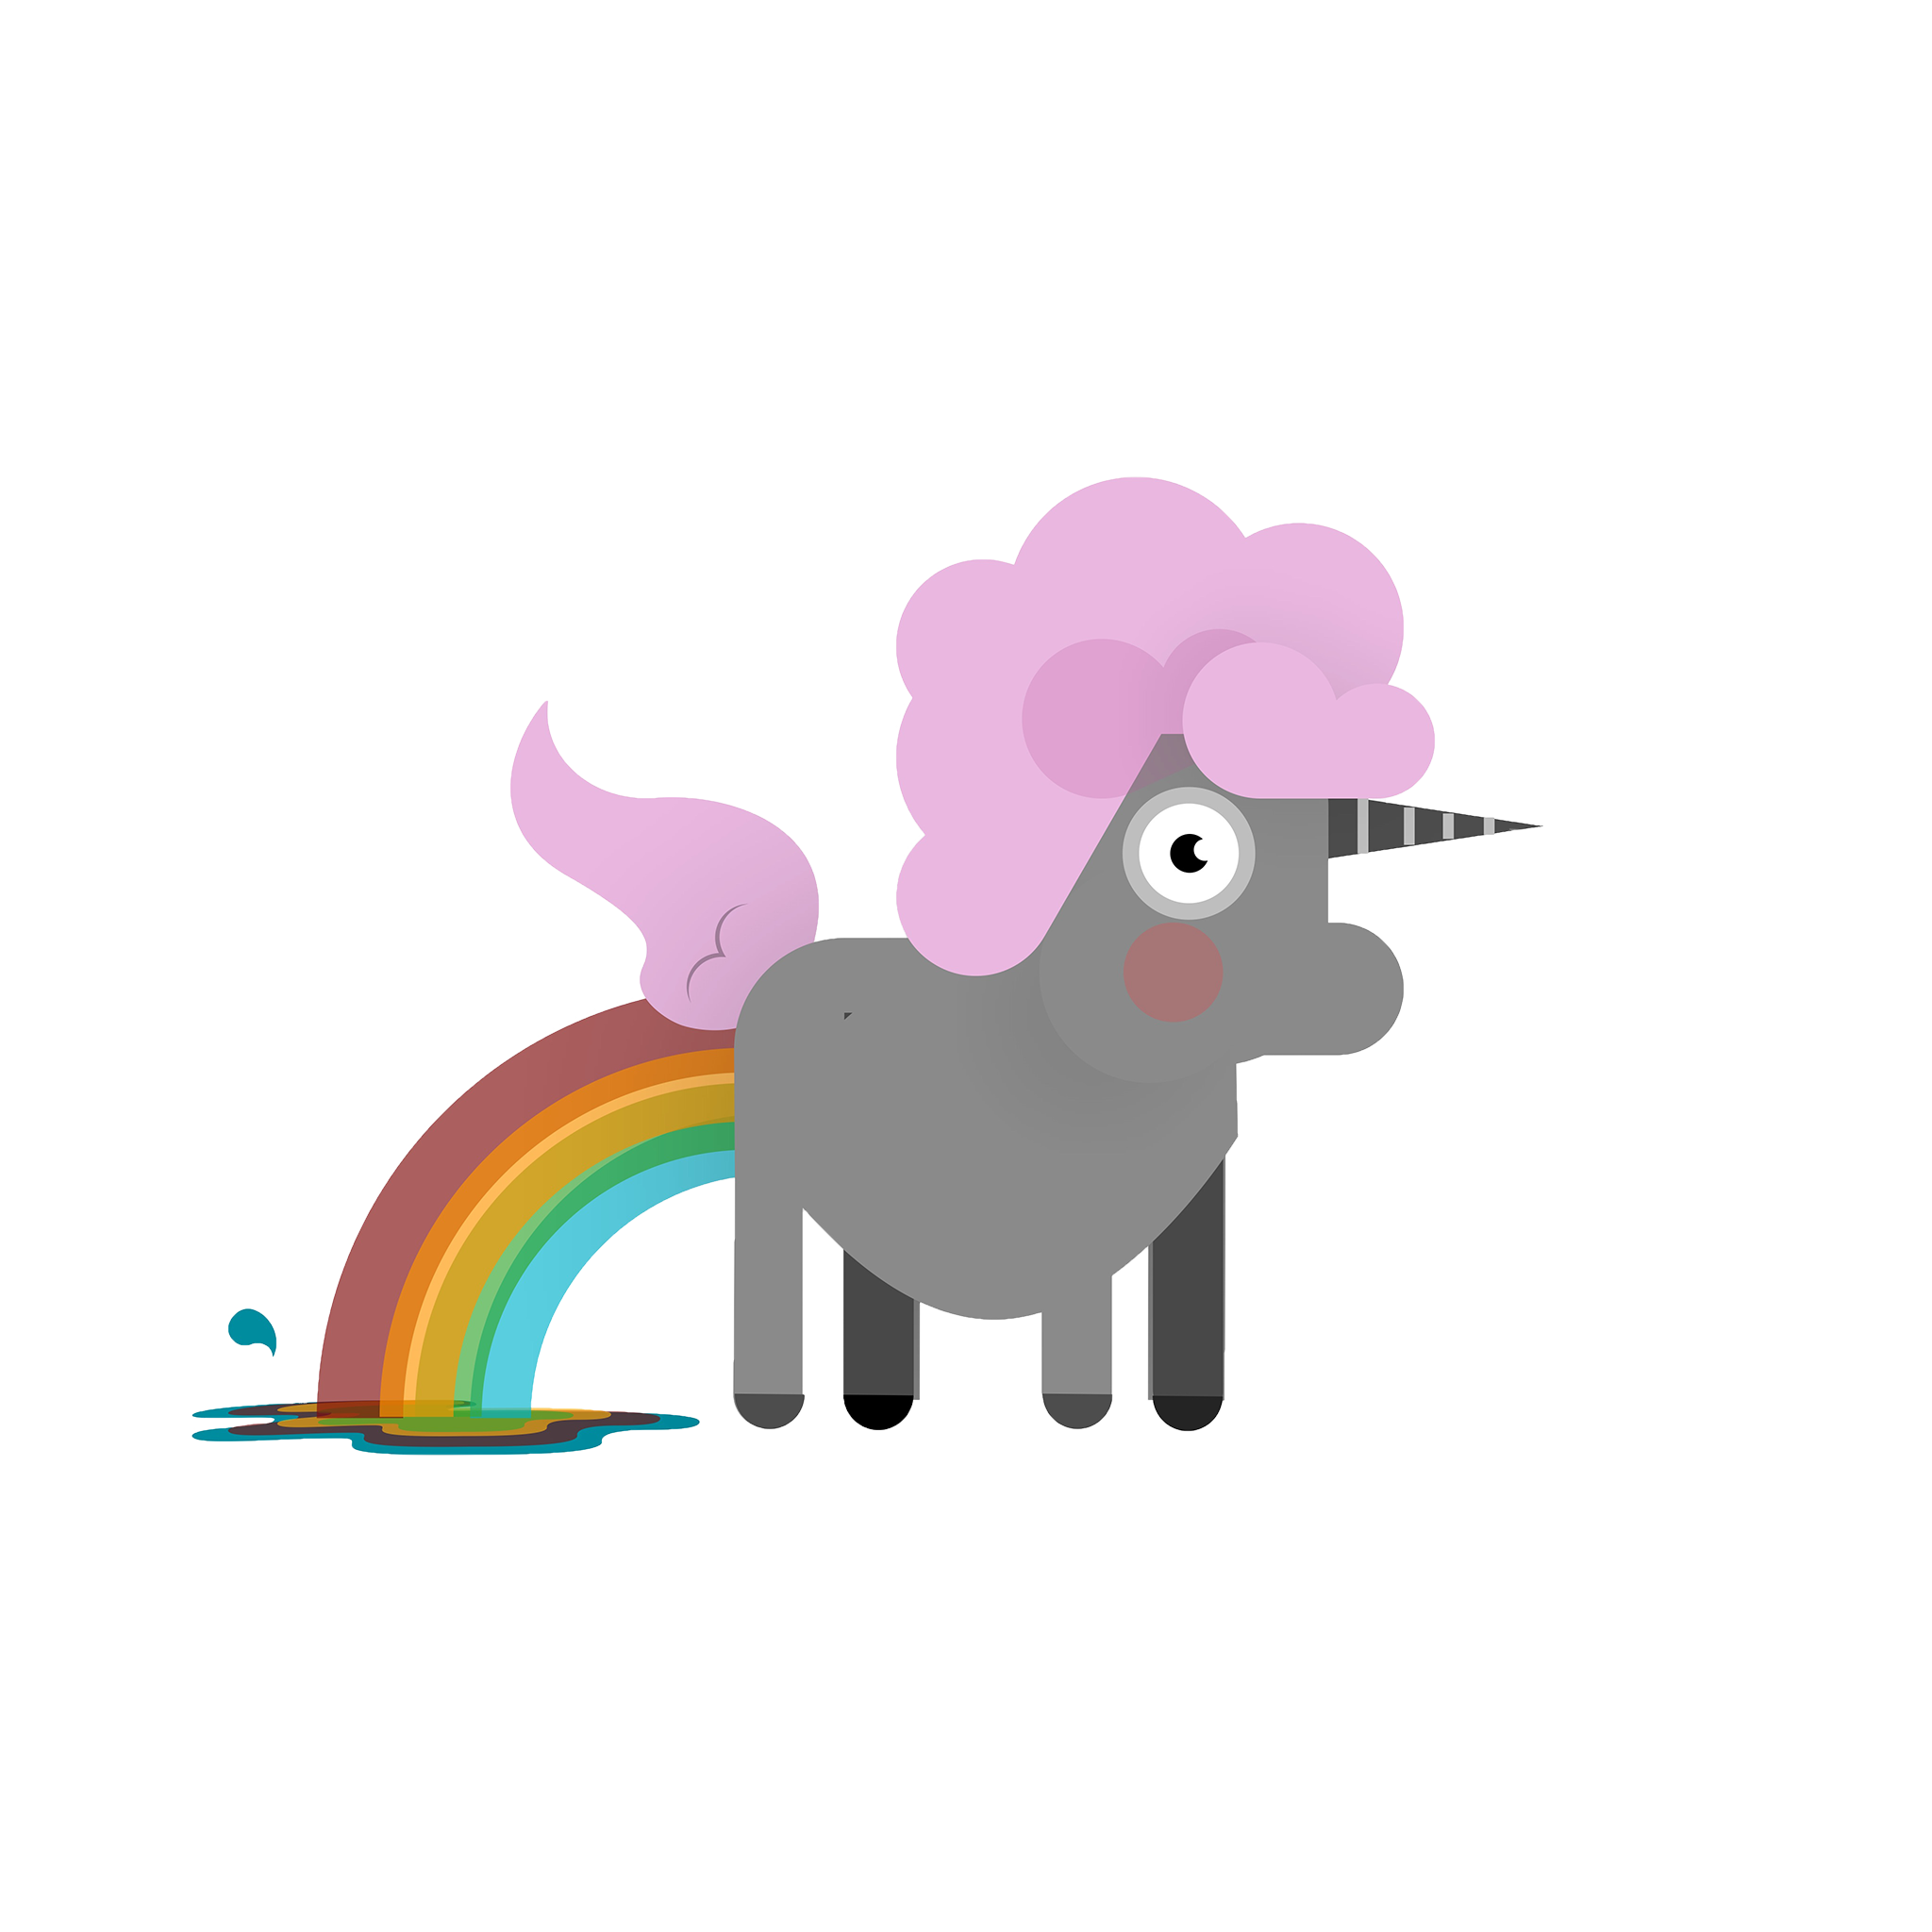 Bad Unicorn Sticker messages sticker-10